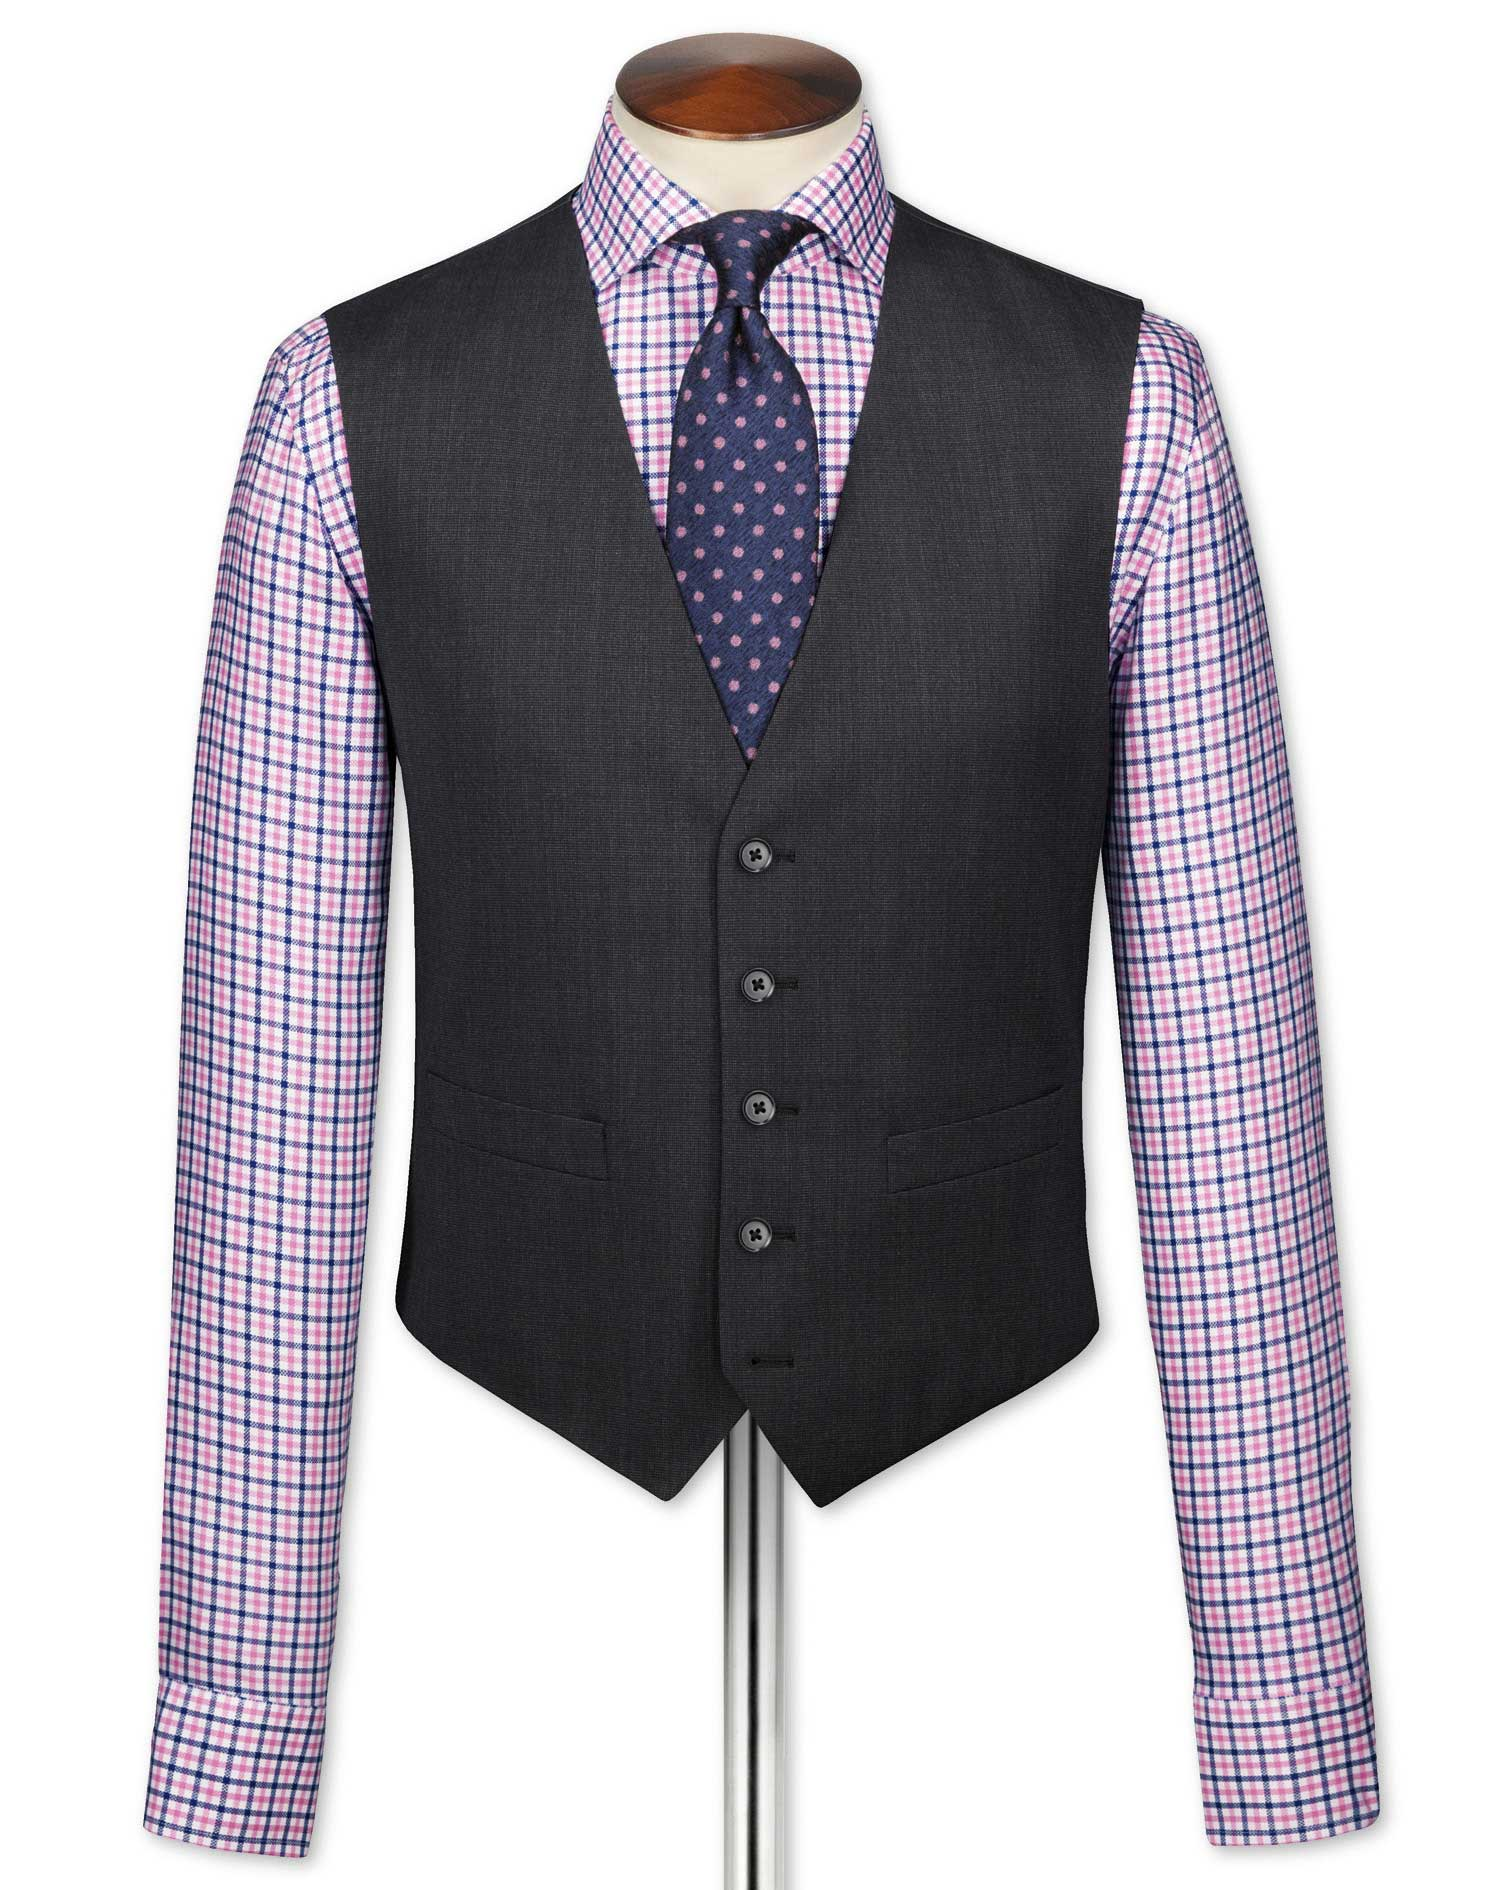 Charcoal End-On-End Business Suit Wool Waistcoat Size w38 by Charles Tyrwhitt